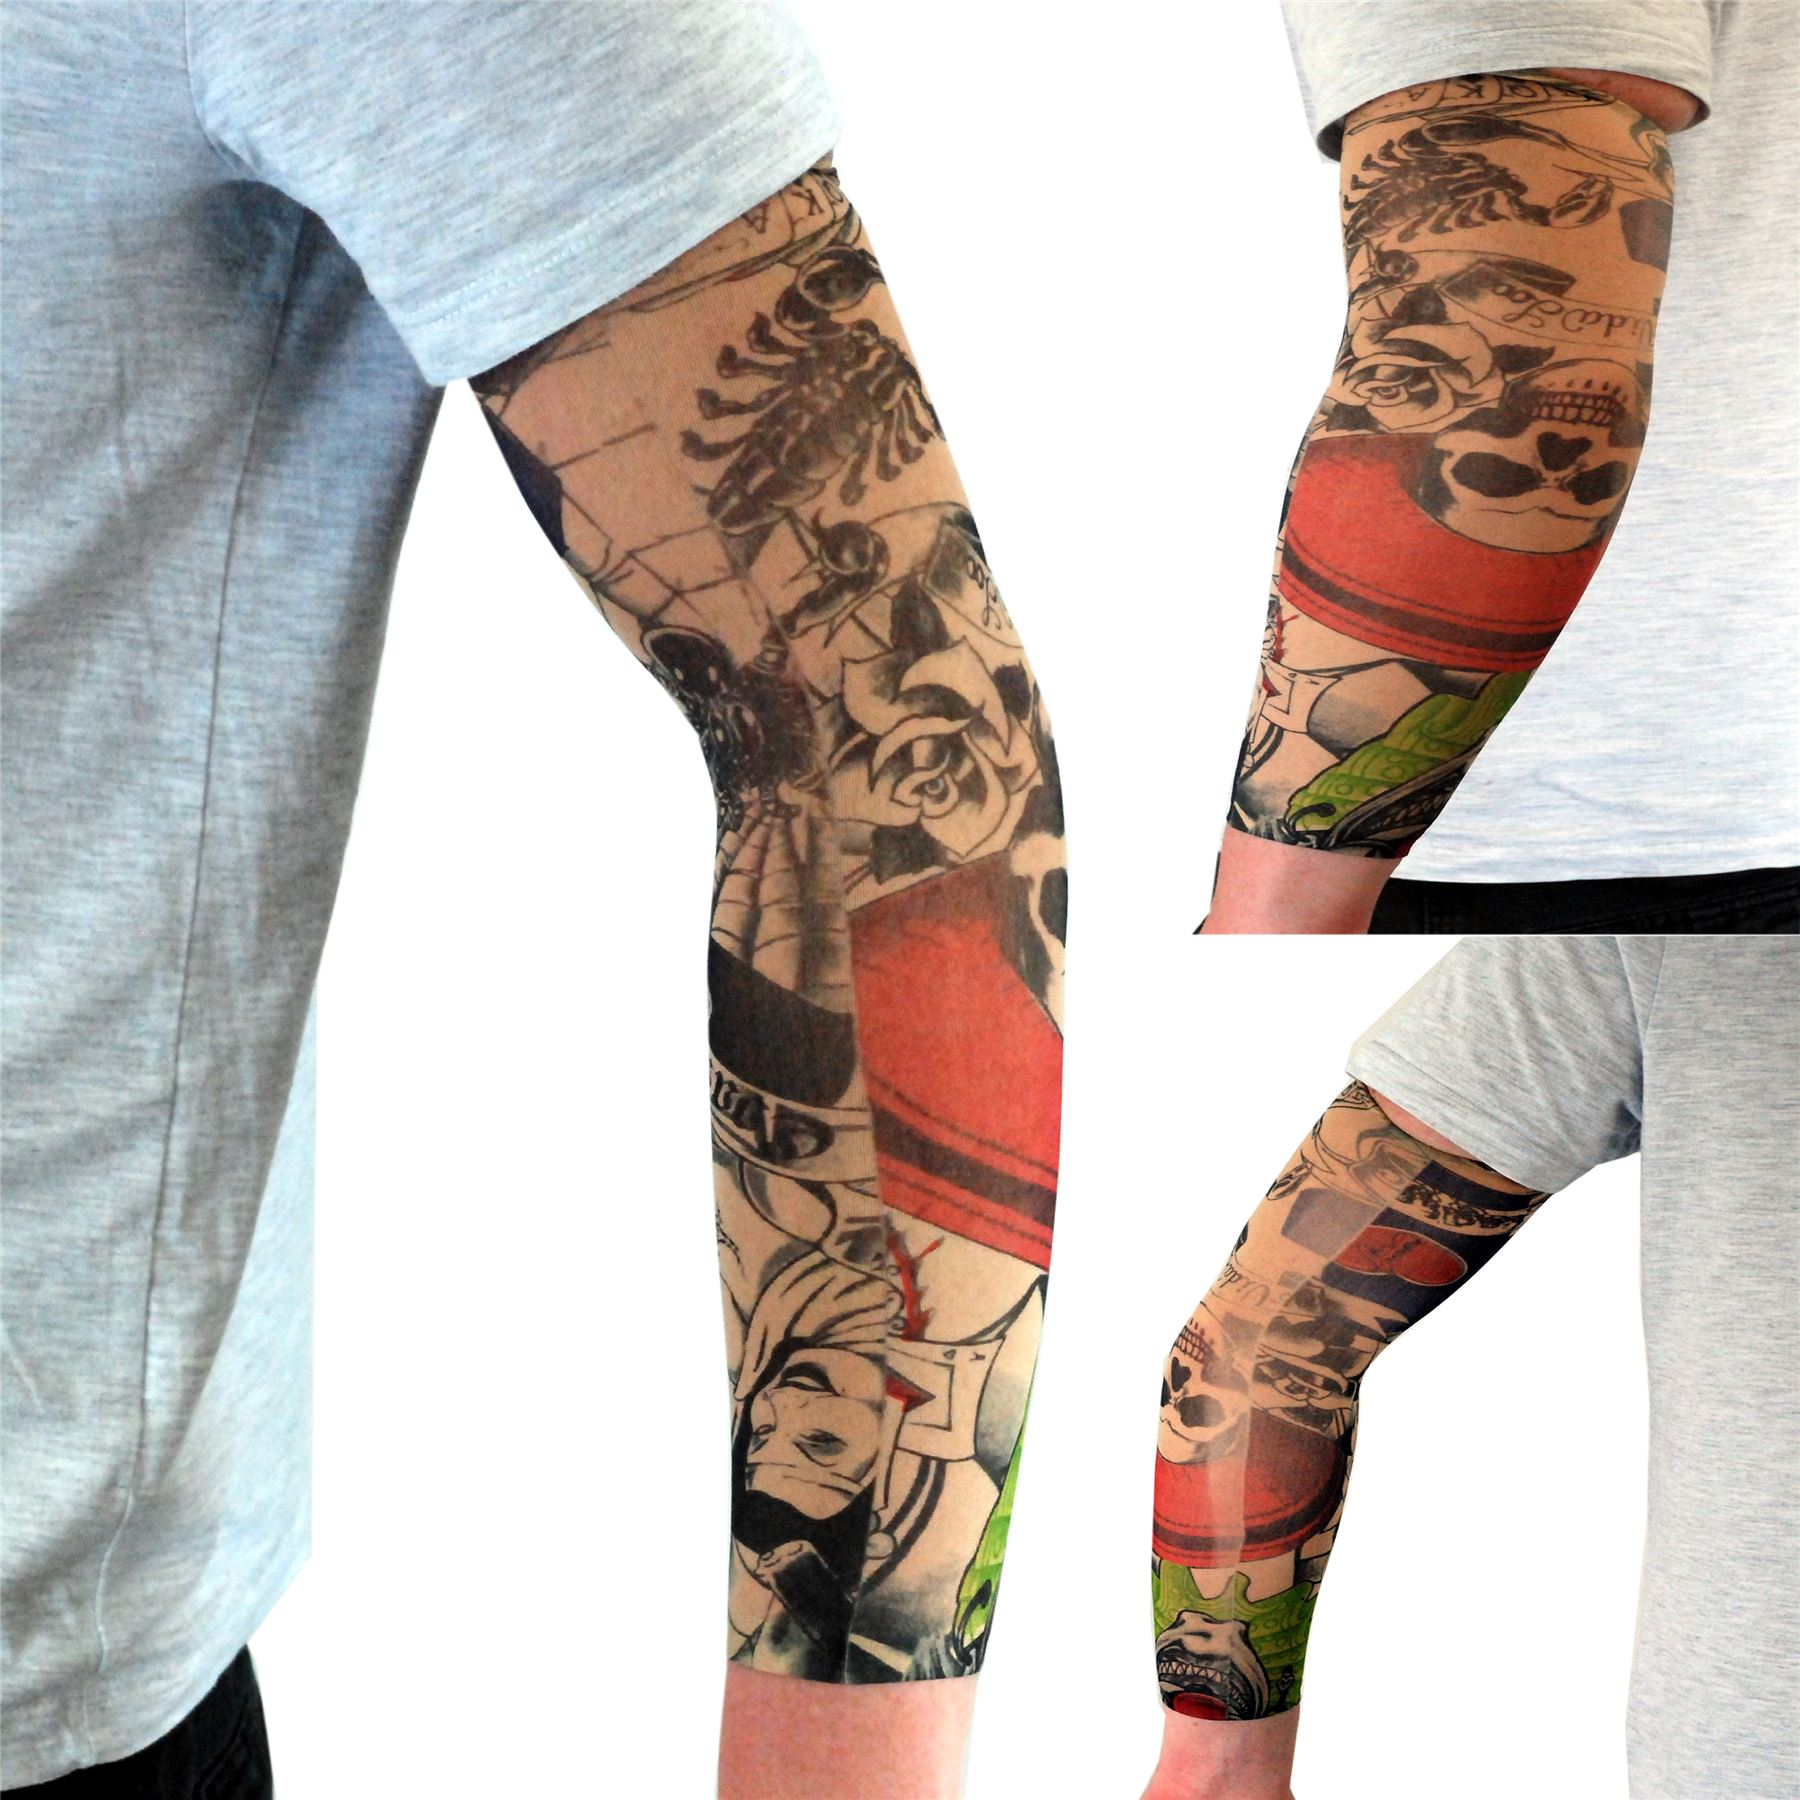 11 Style Fake Arm Tattoo Nylon Sleeve Party Theme Dress Up Rocker with regard to dimensions 1800 X 1800